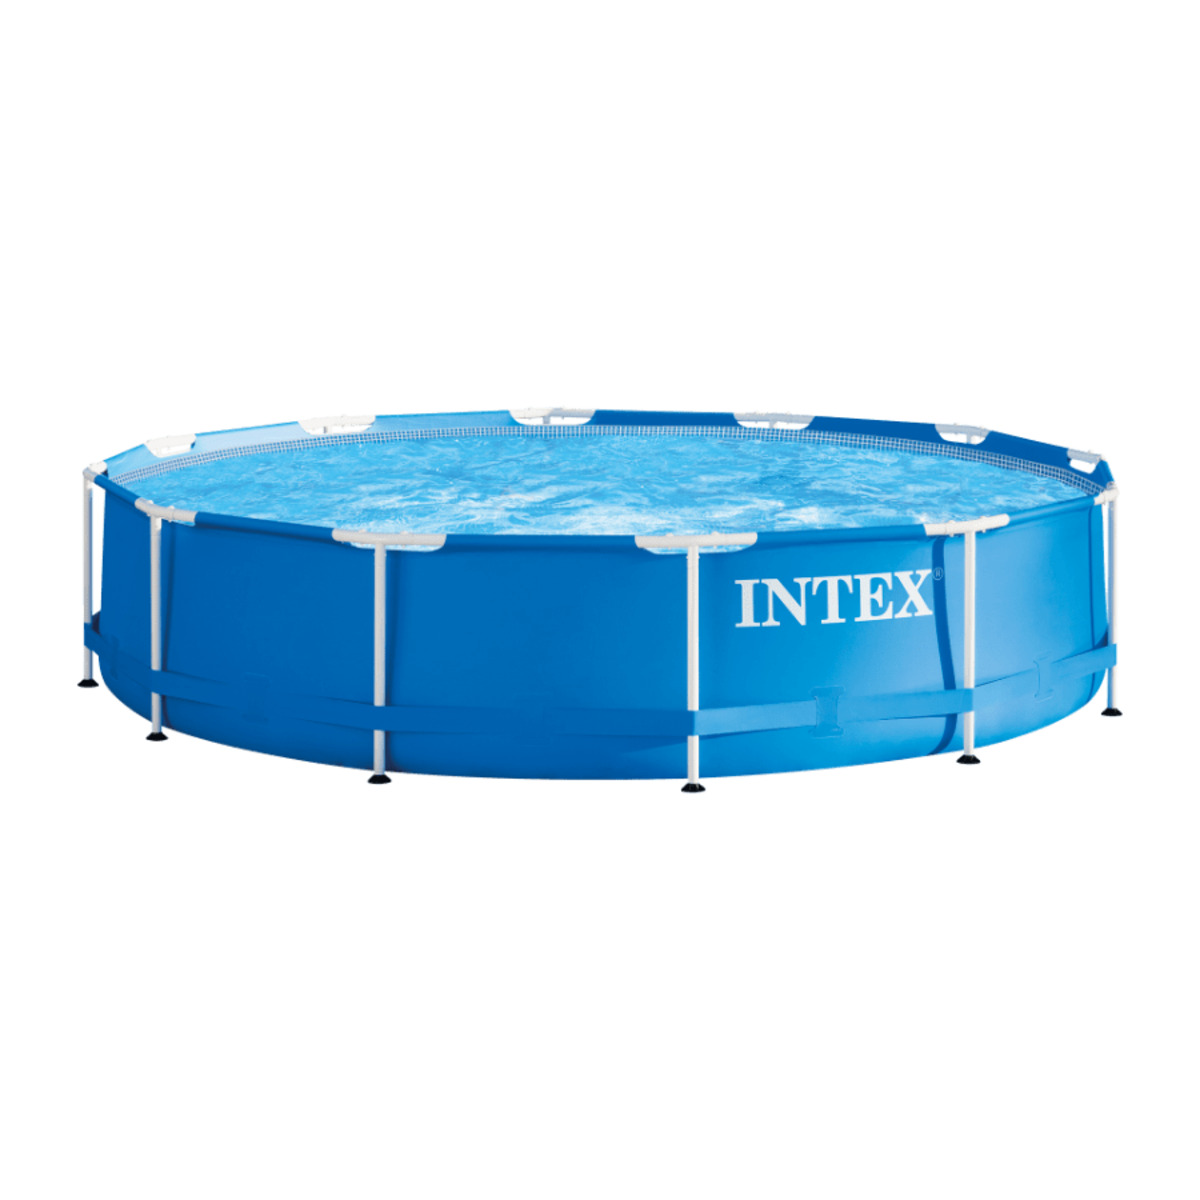 Bild 1 von Intex Familien Swimmingpool